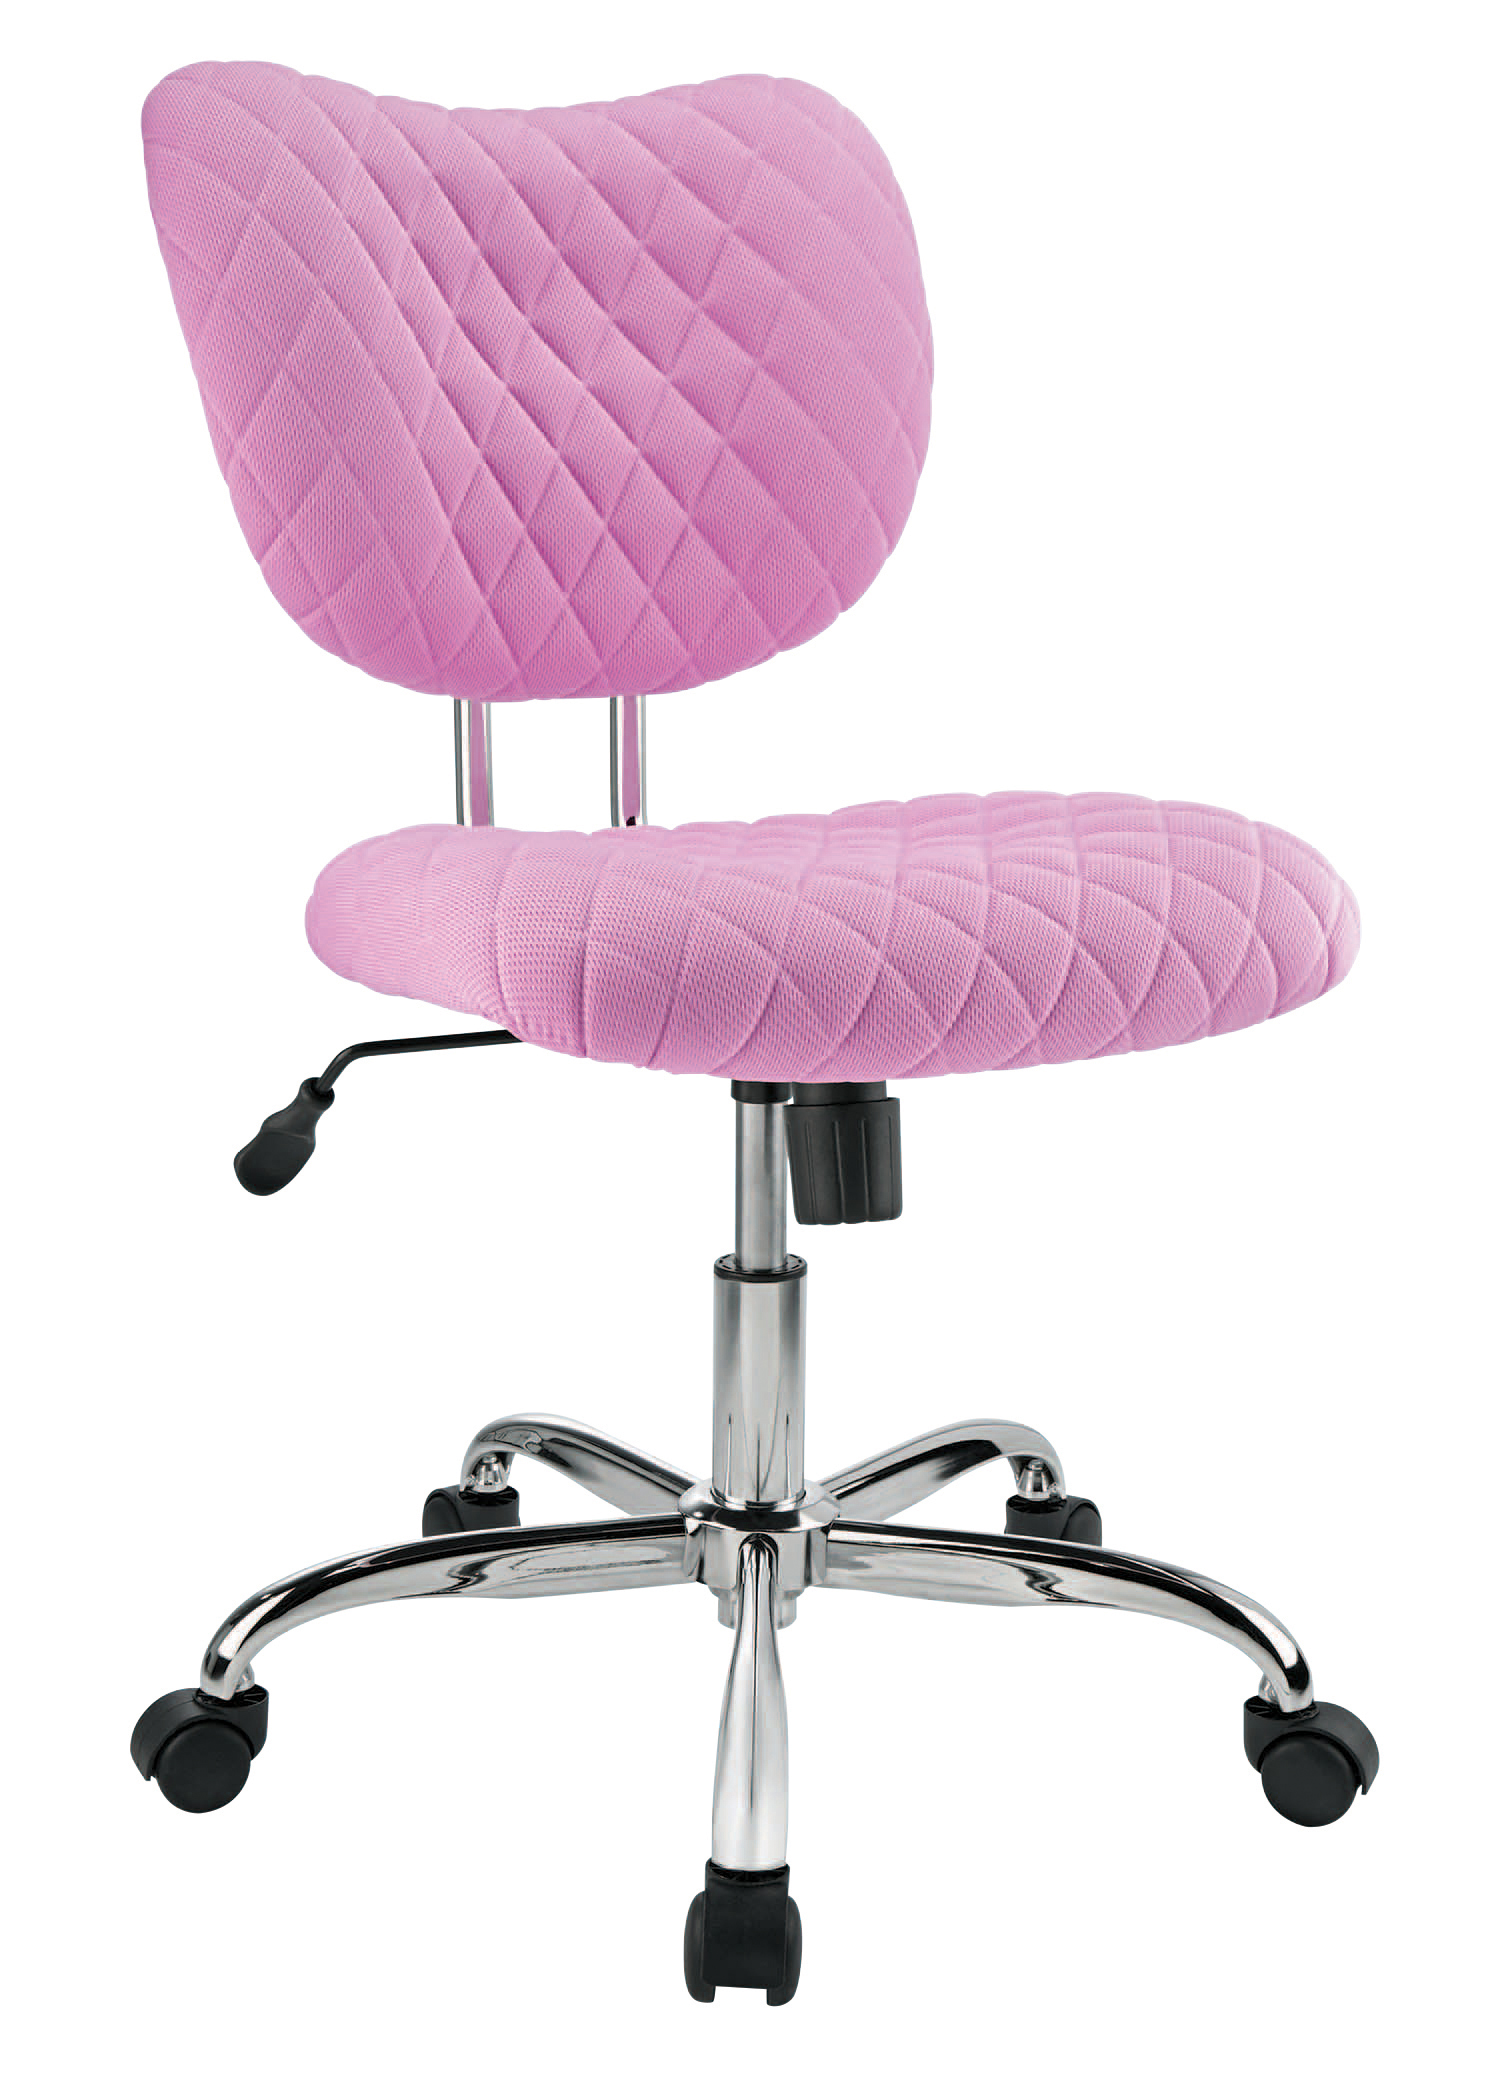 Brenton Studio® Quilted Jancy Mesh Low-Back Task Chair, Pink/Chrome